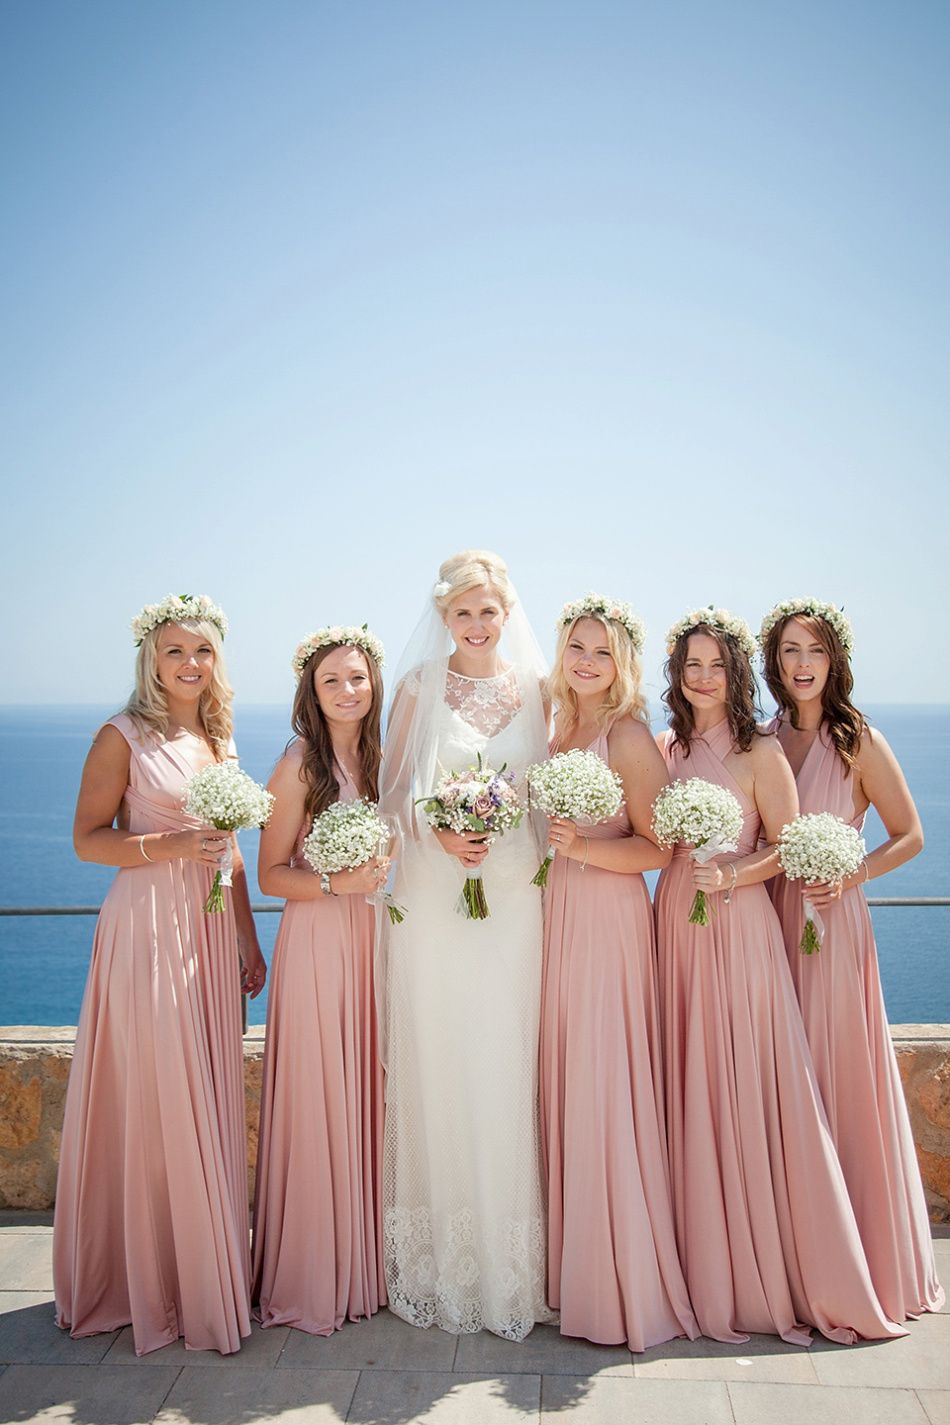 Halfpenny london lace and shades of blush pink for a wedding in blush pink twobirds bridesmaid dresses a real wedding featuring our multiway convertible wrap dresses ombrellifo Gallery